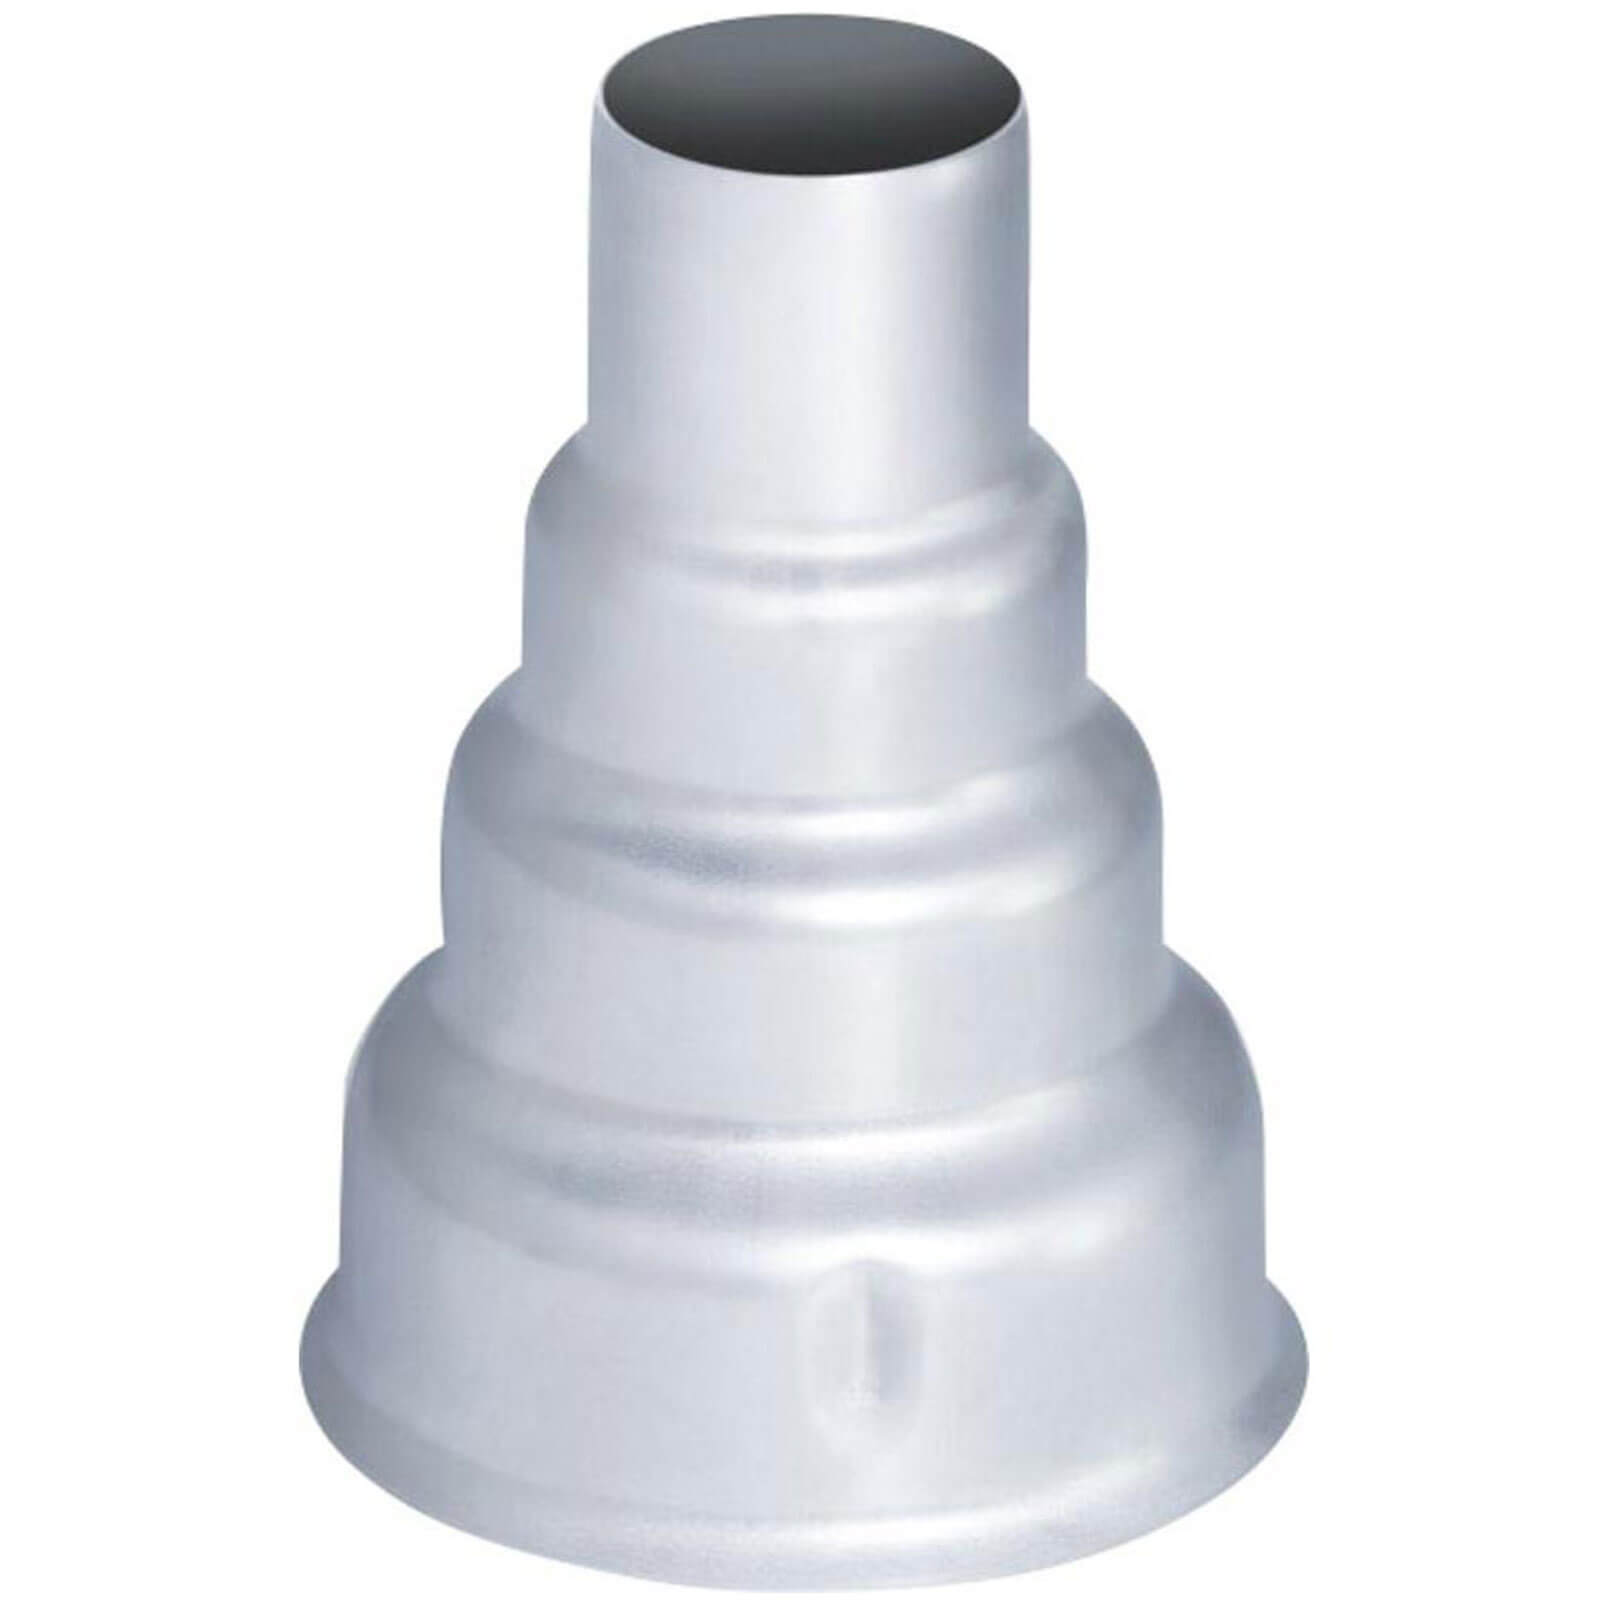 Steinel 14mm Reduction Nozzle for Heat Guns